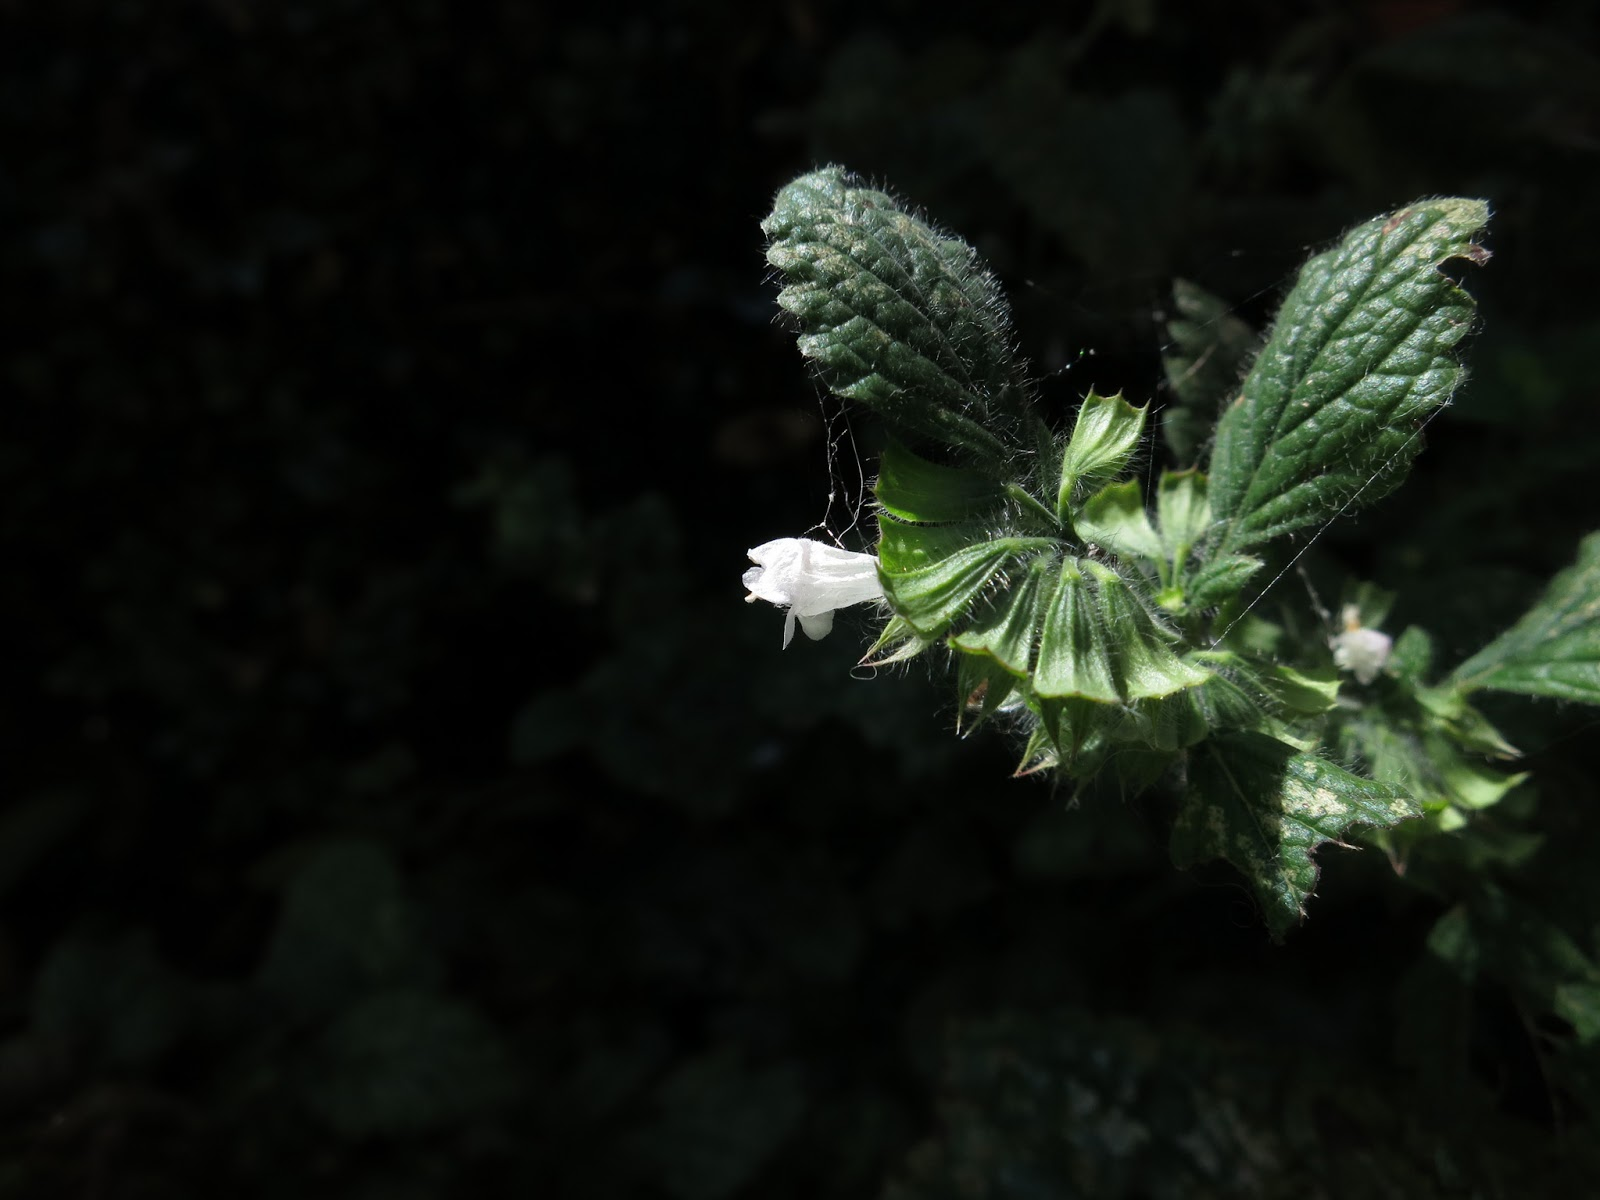 White flower of lemon scented balm against dark background